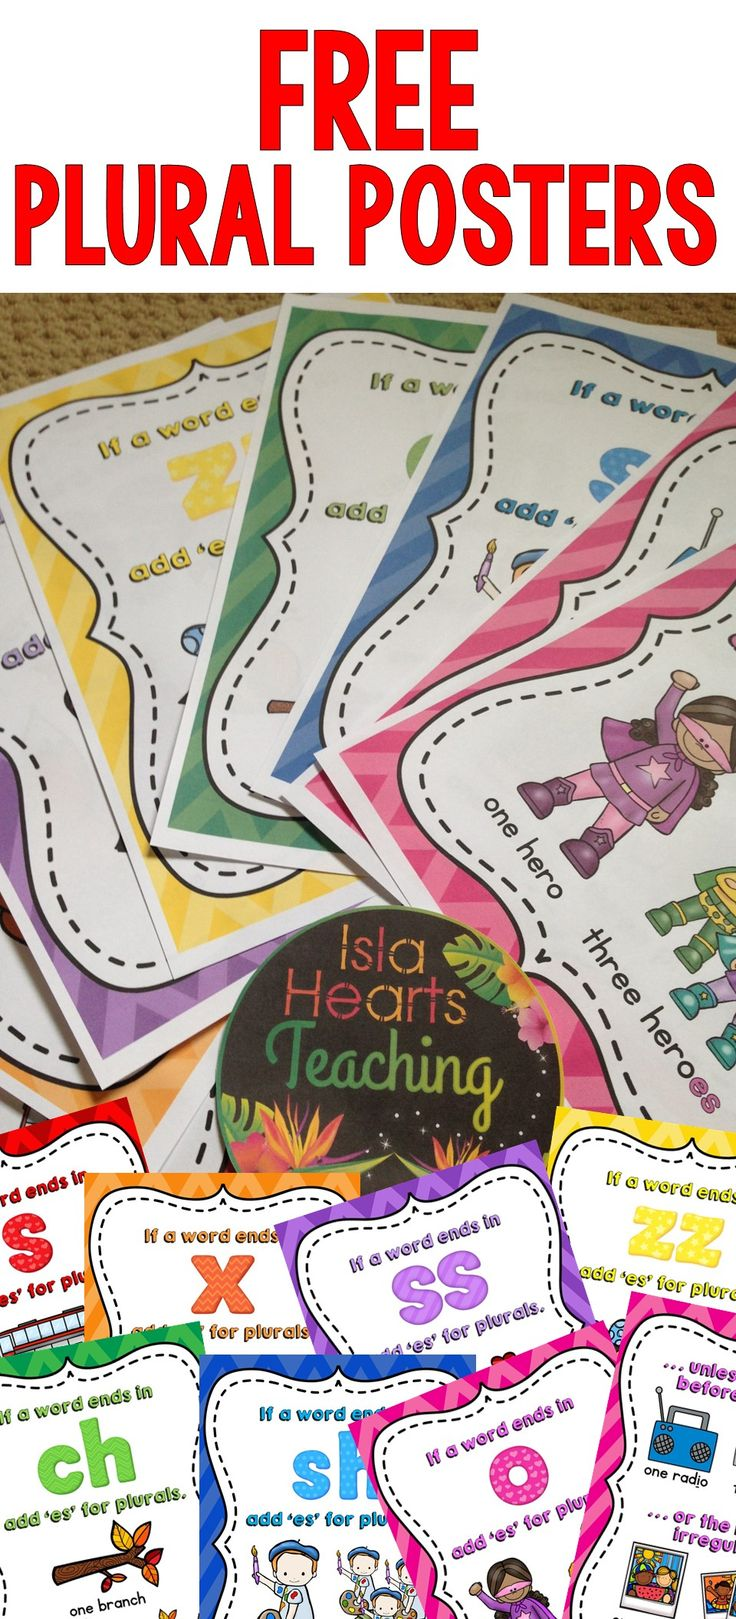 FREE plural posters (classroom décor and bulletin board ideas for spelling and grammar) #islaheartsteaching